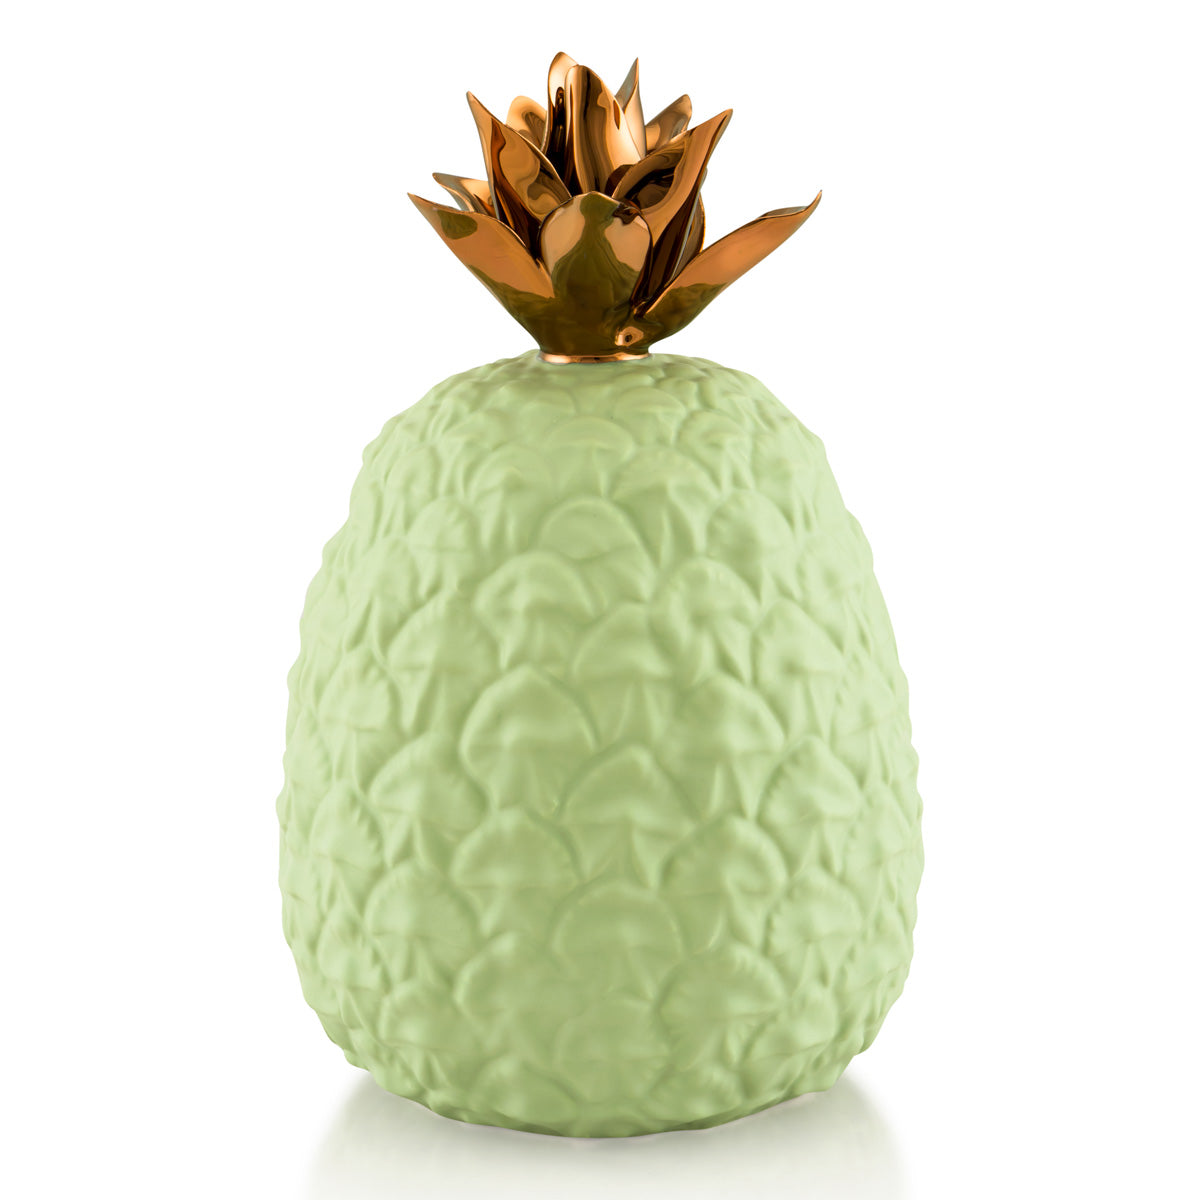 Ceramic big pineapple